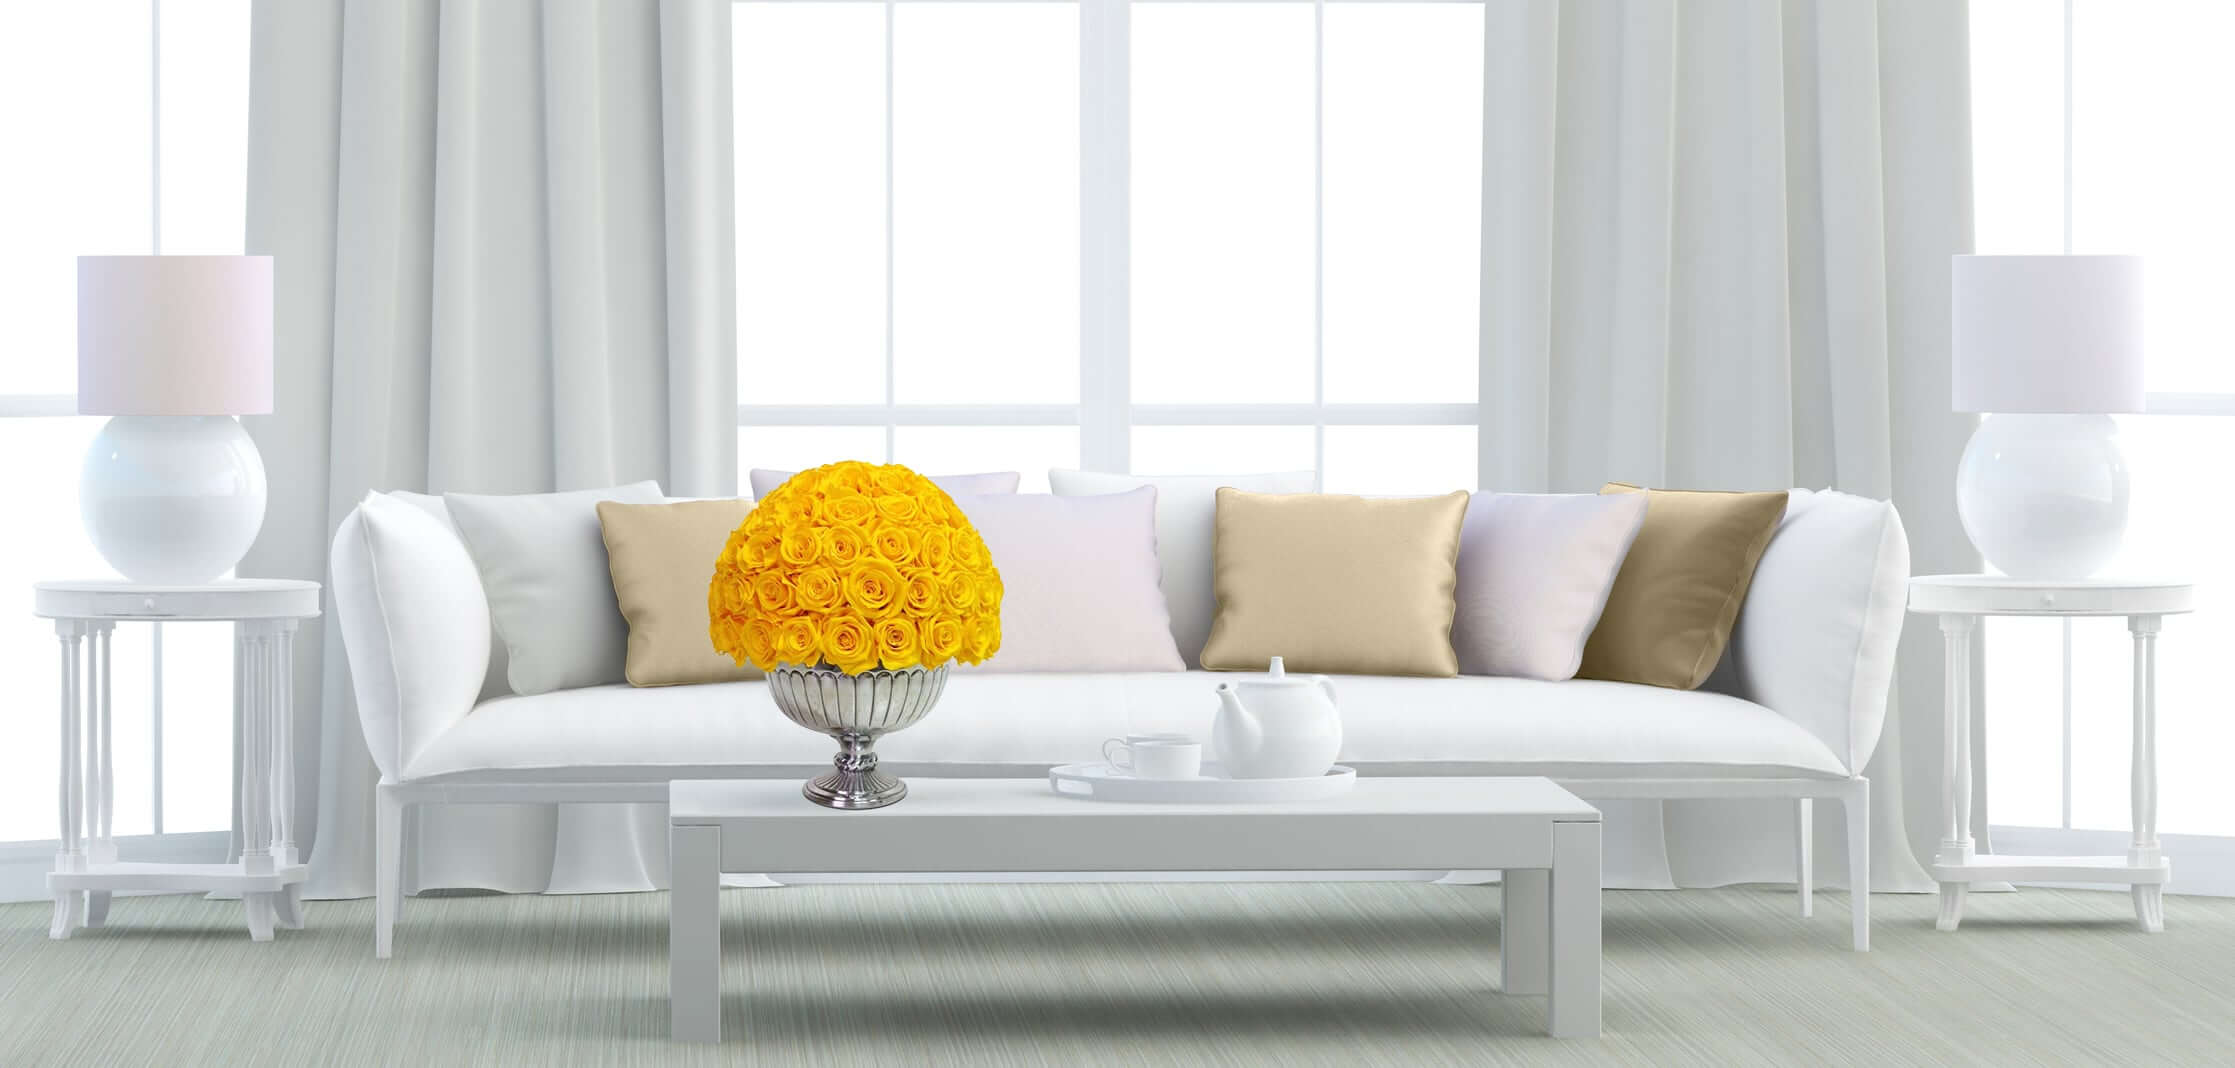 Heinau Yellow Roses Floral Arrangement on Table Interior